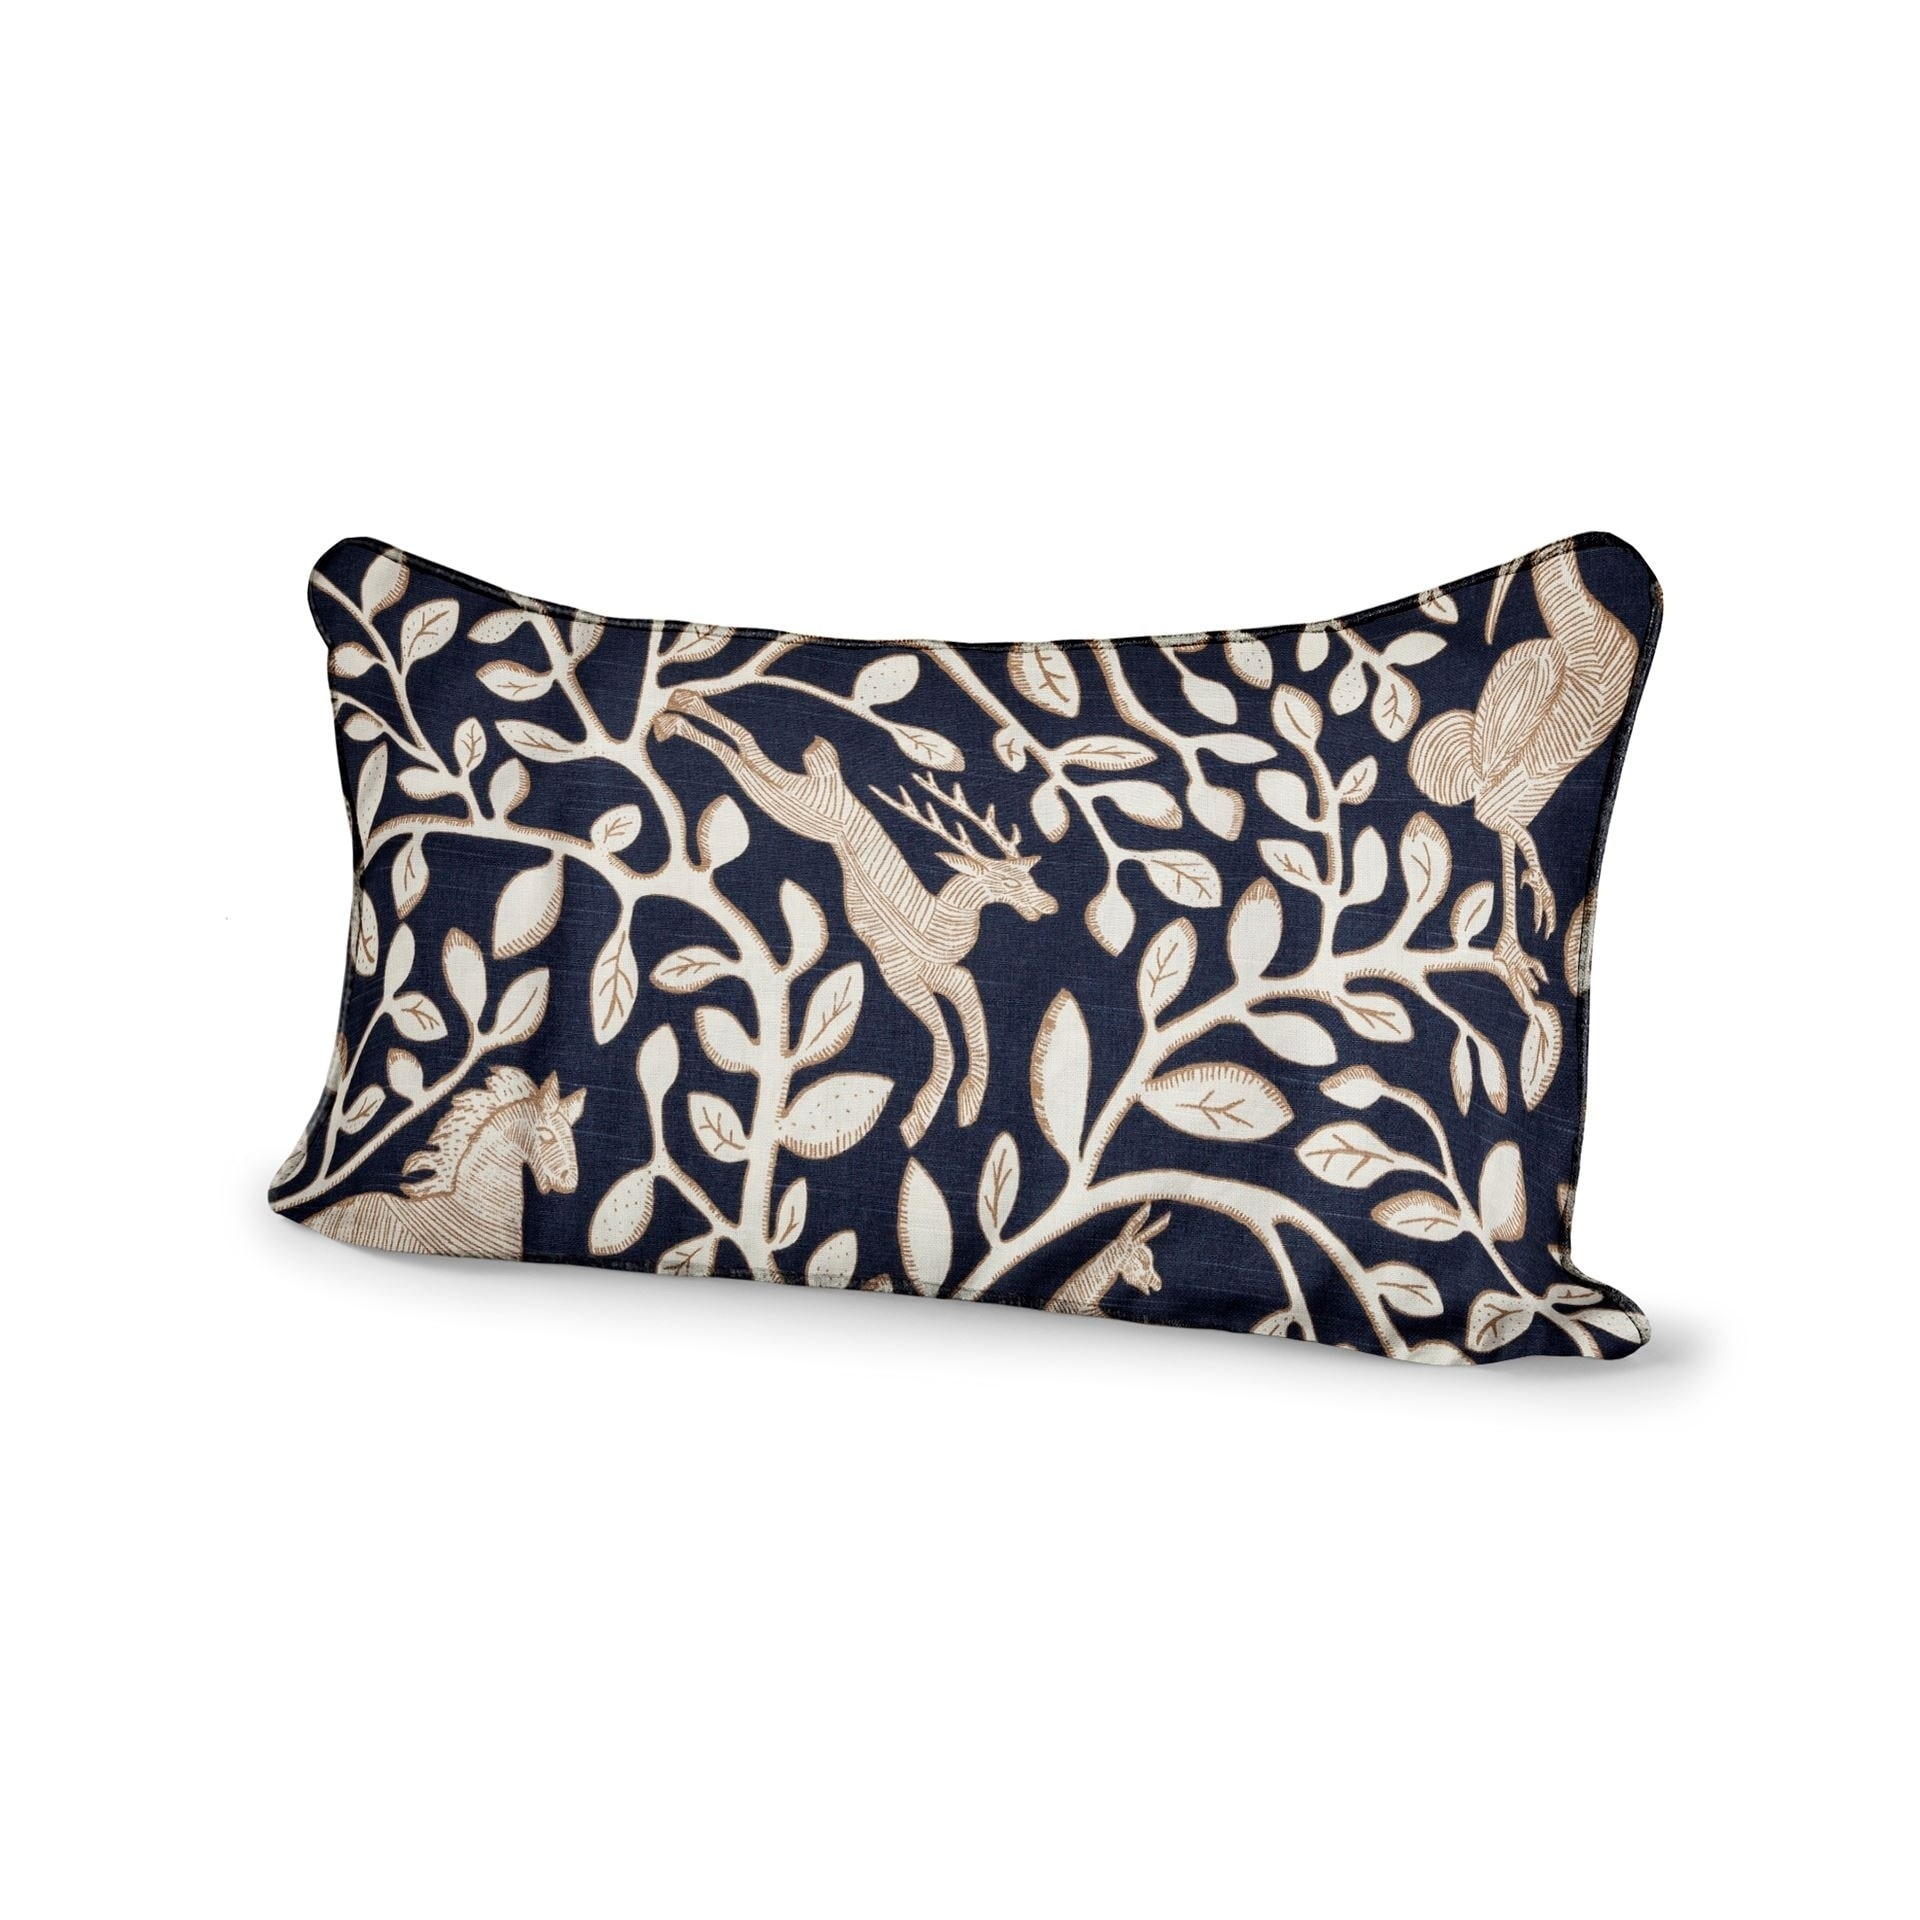 Mercana Calla V 13 x 21 (cover only) Decorative Pillow